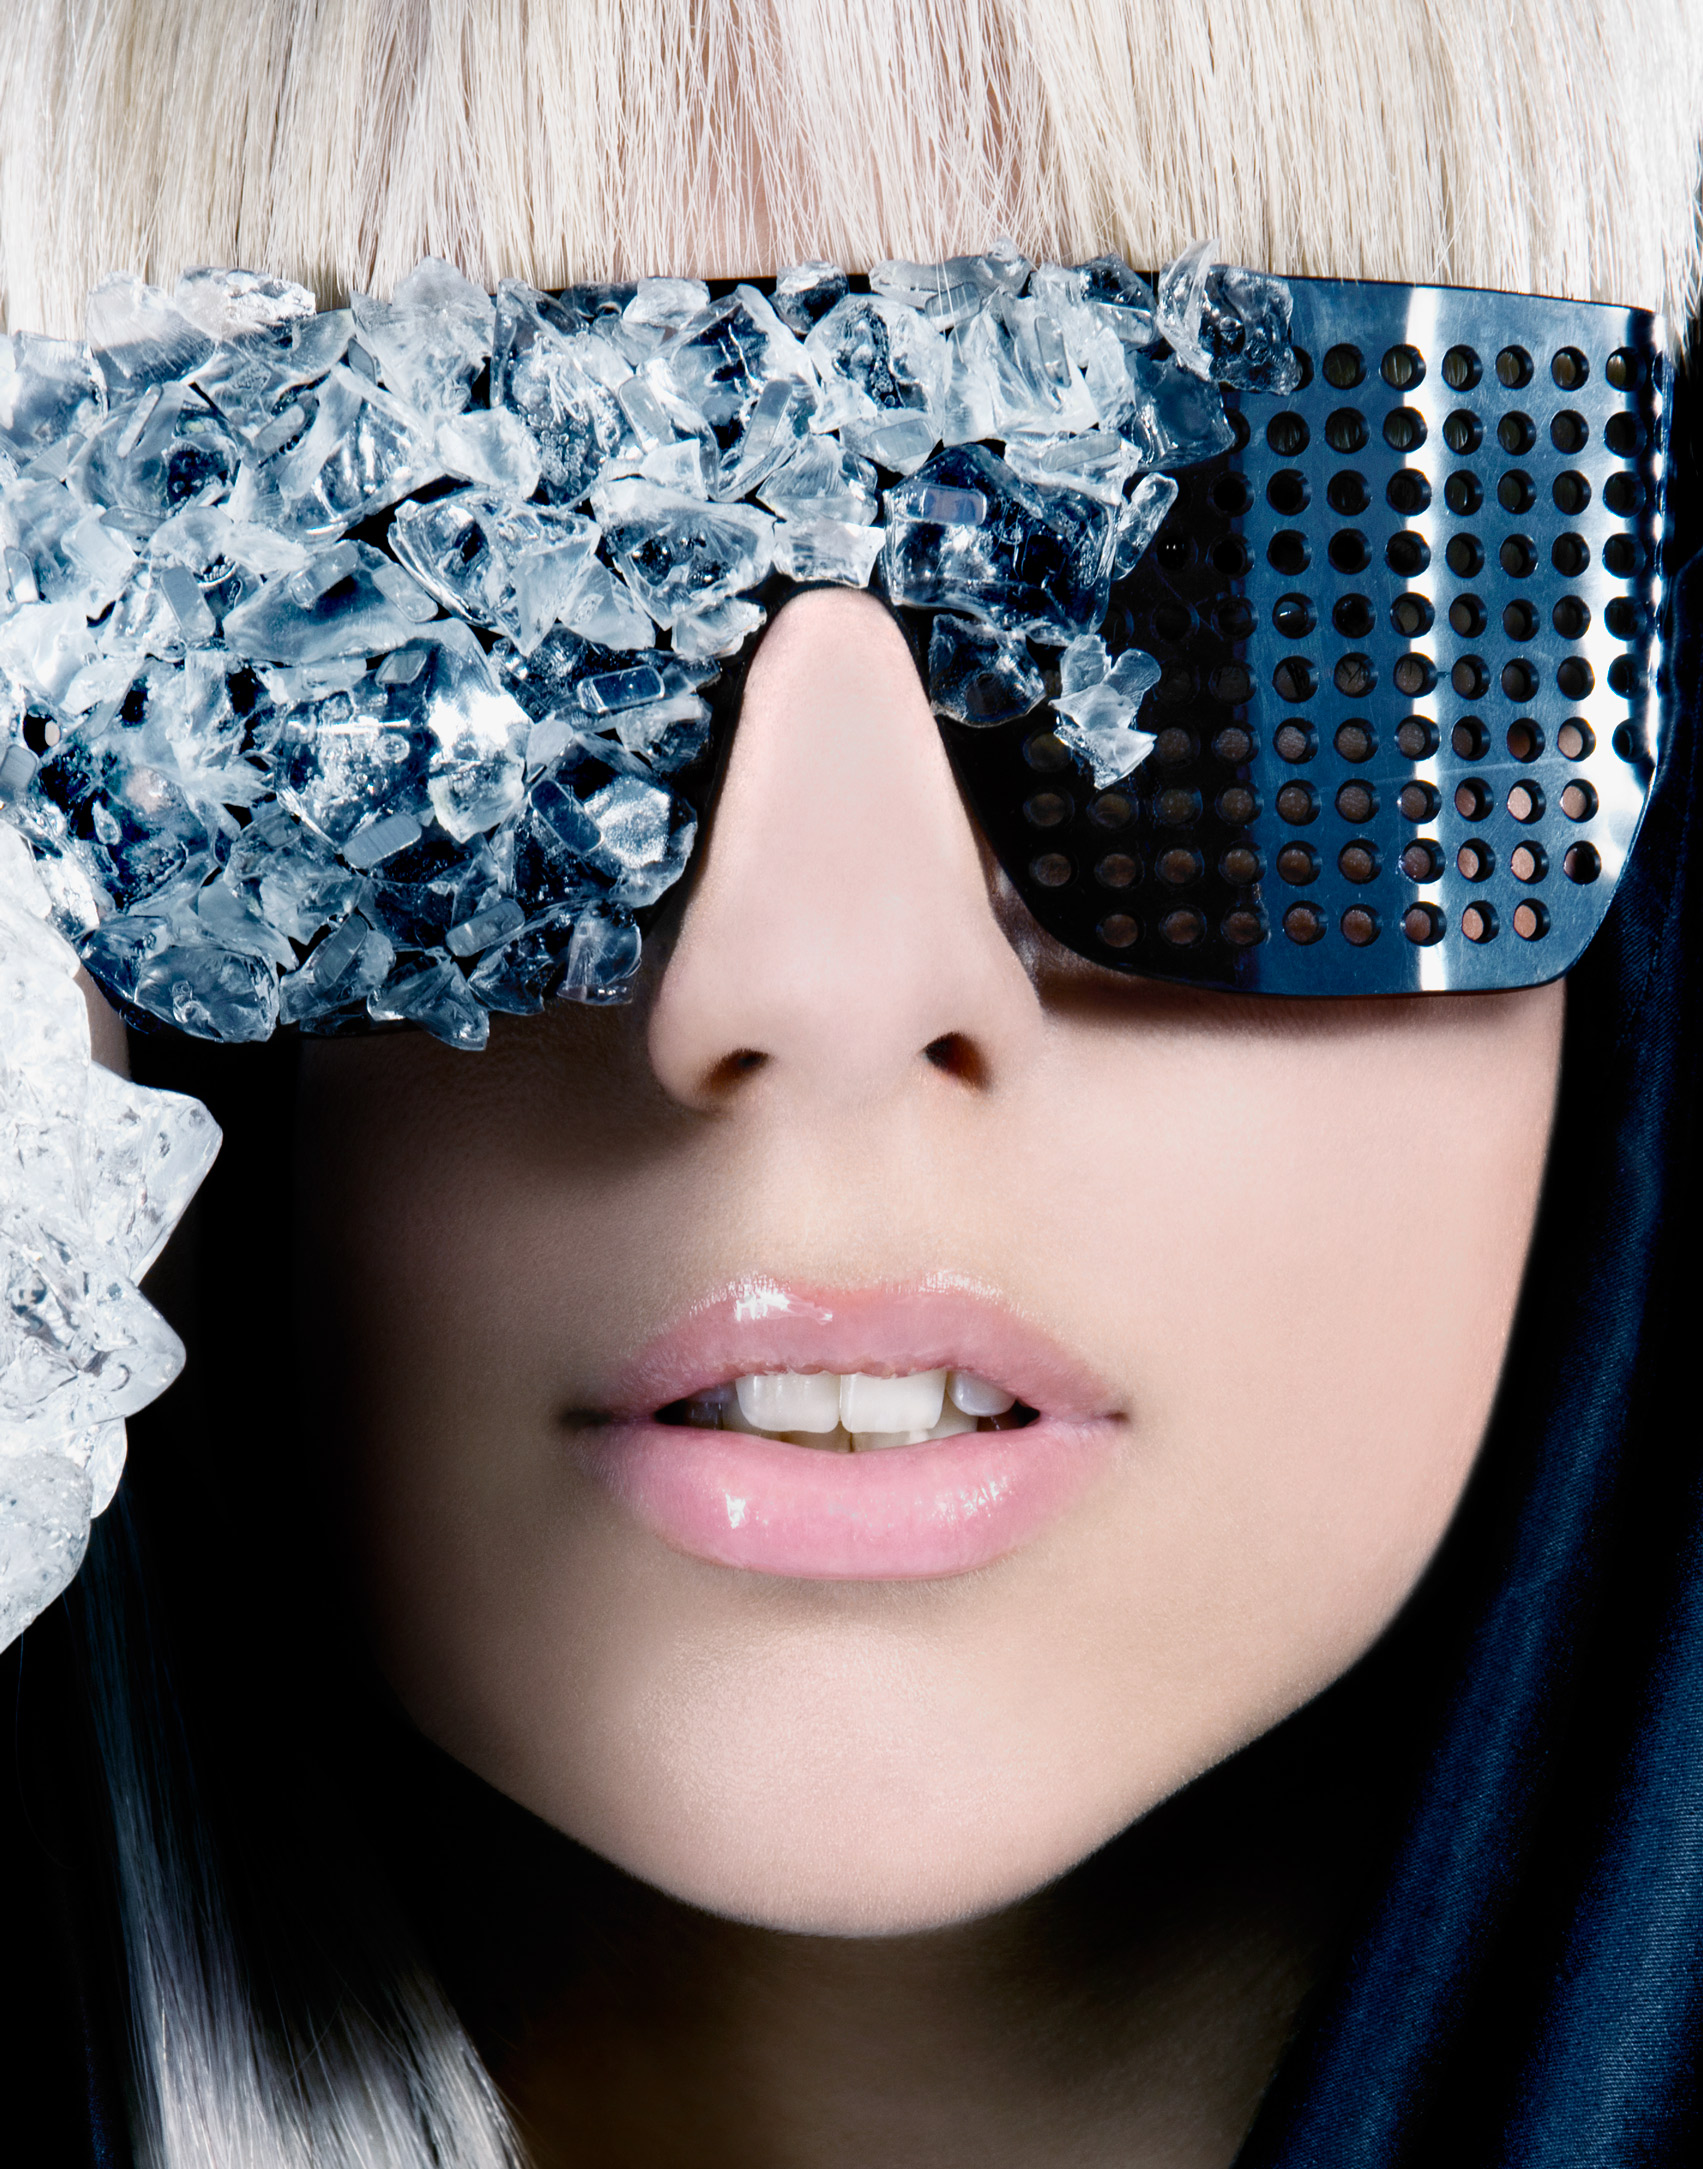 Pieter_Henket_Photography_The_Fame__Lady_Gaga_New_York_2008.jpg